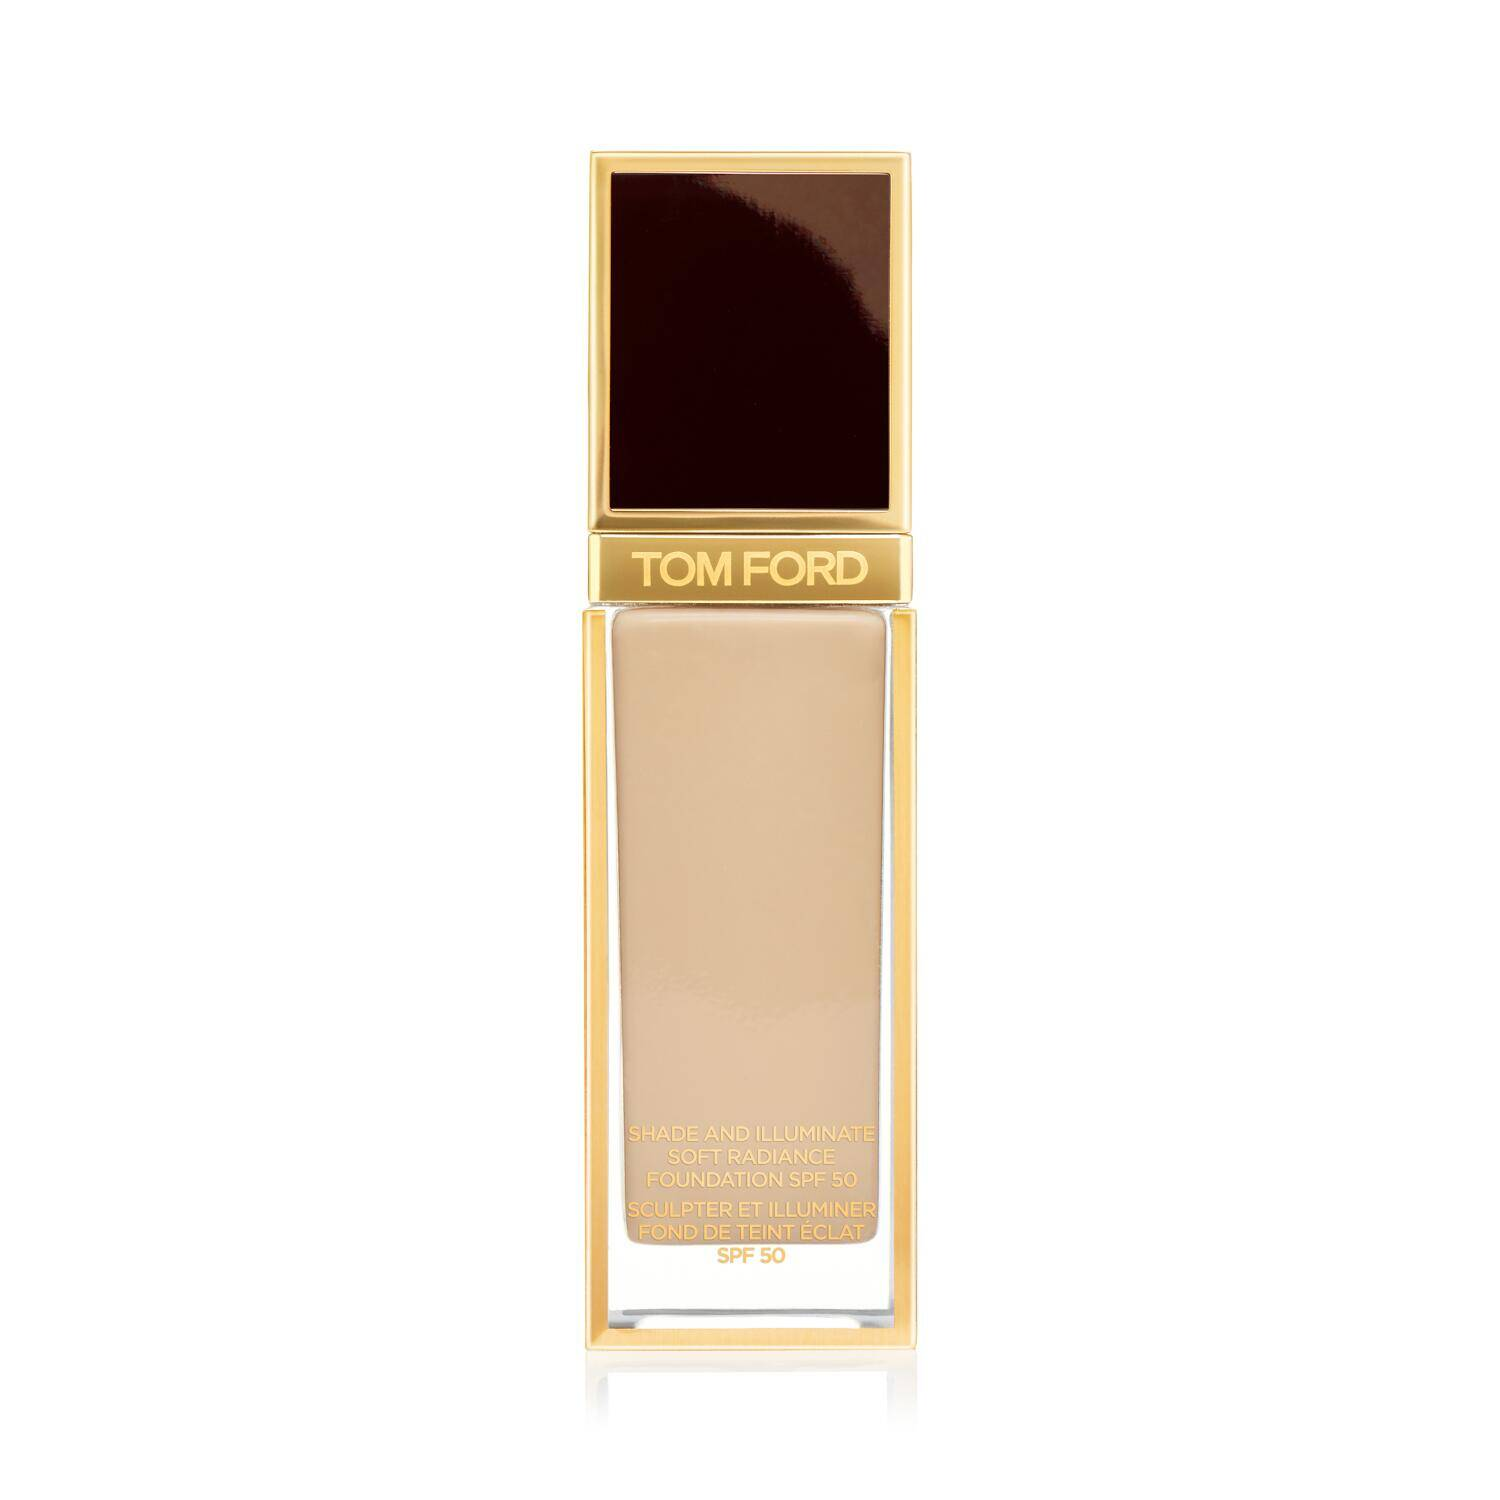 TOM FORD Shade & Illuminate Foundation (Natural | 30 ml) Make Up, Gesicht, Foundation Cosmetics, Face von TOM FORD